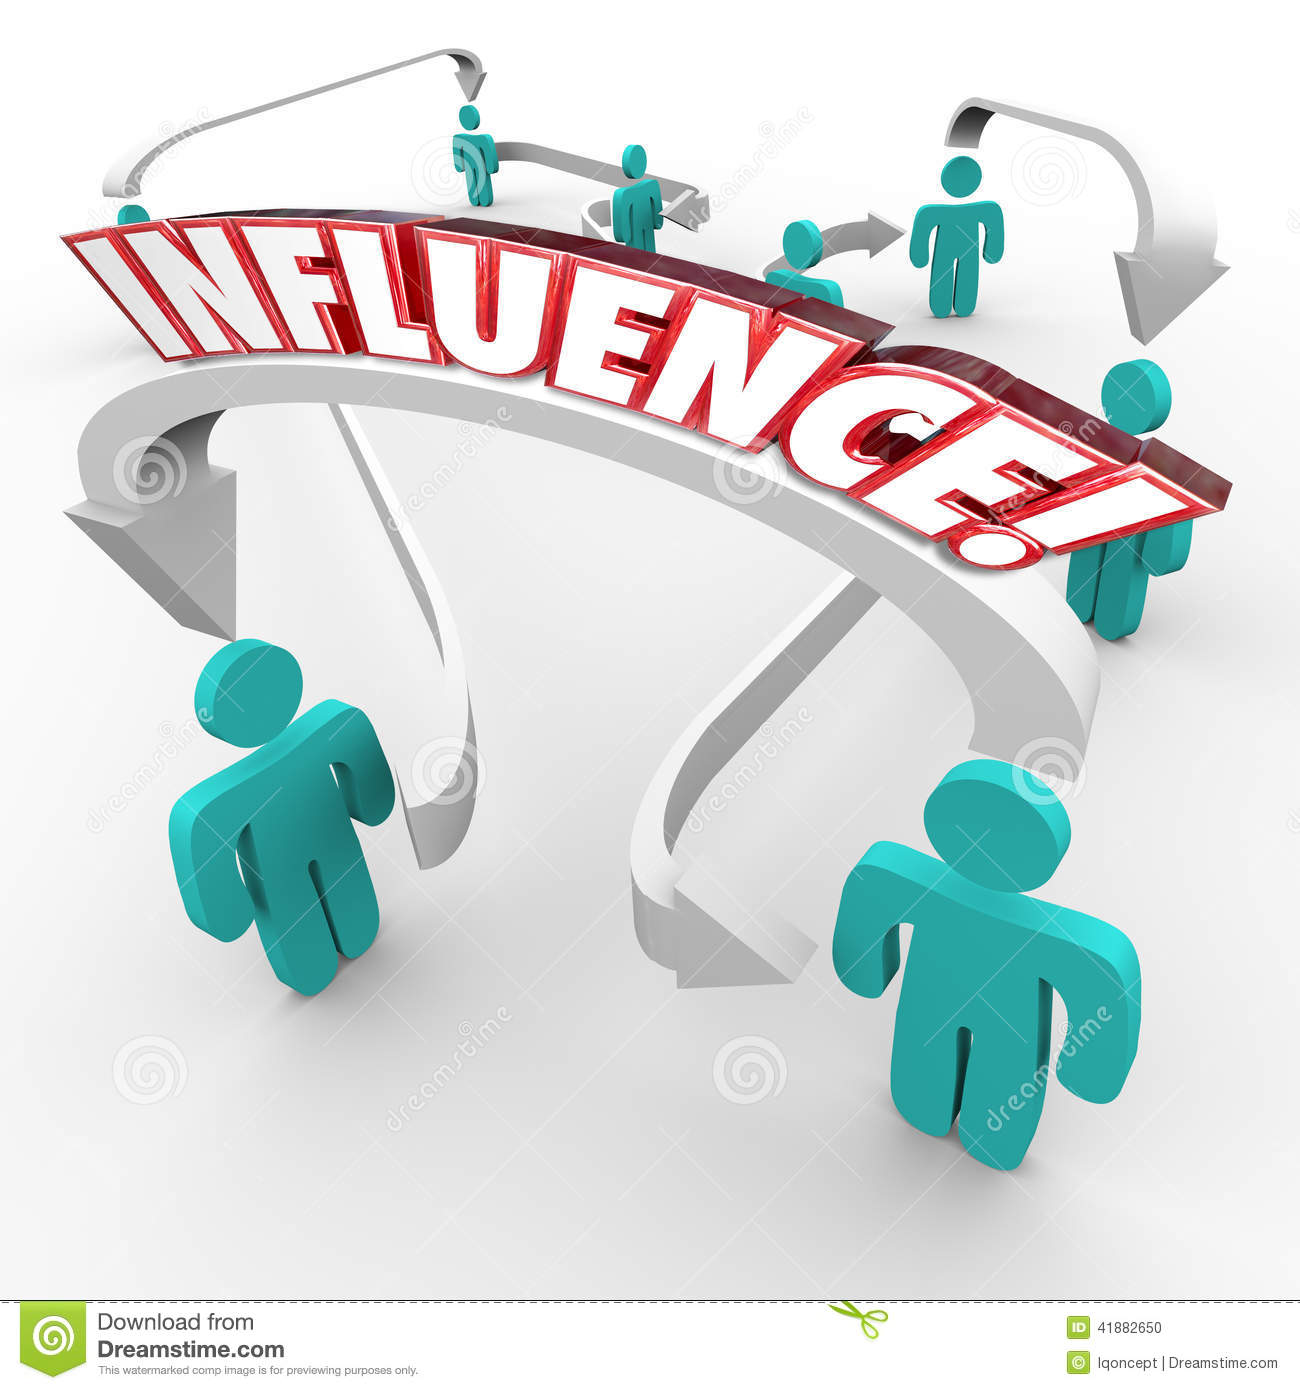 Influence Stock Illustrations.